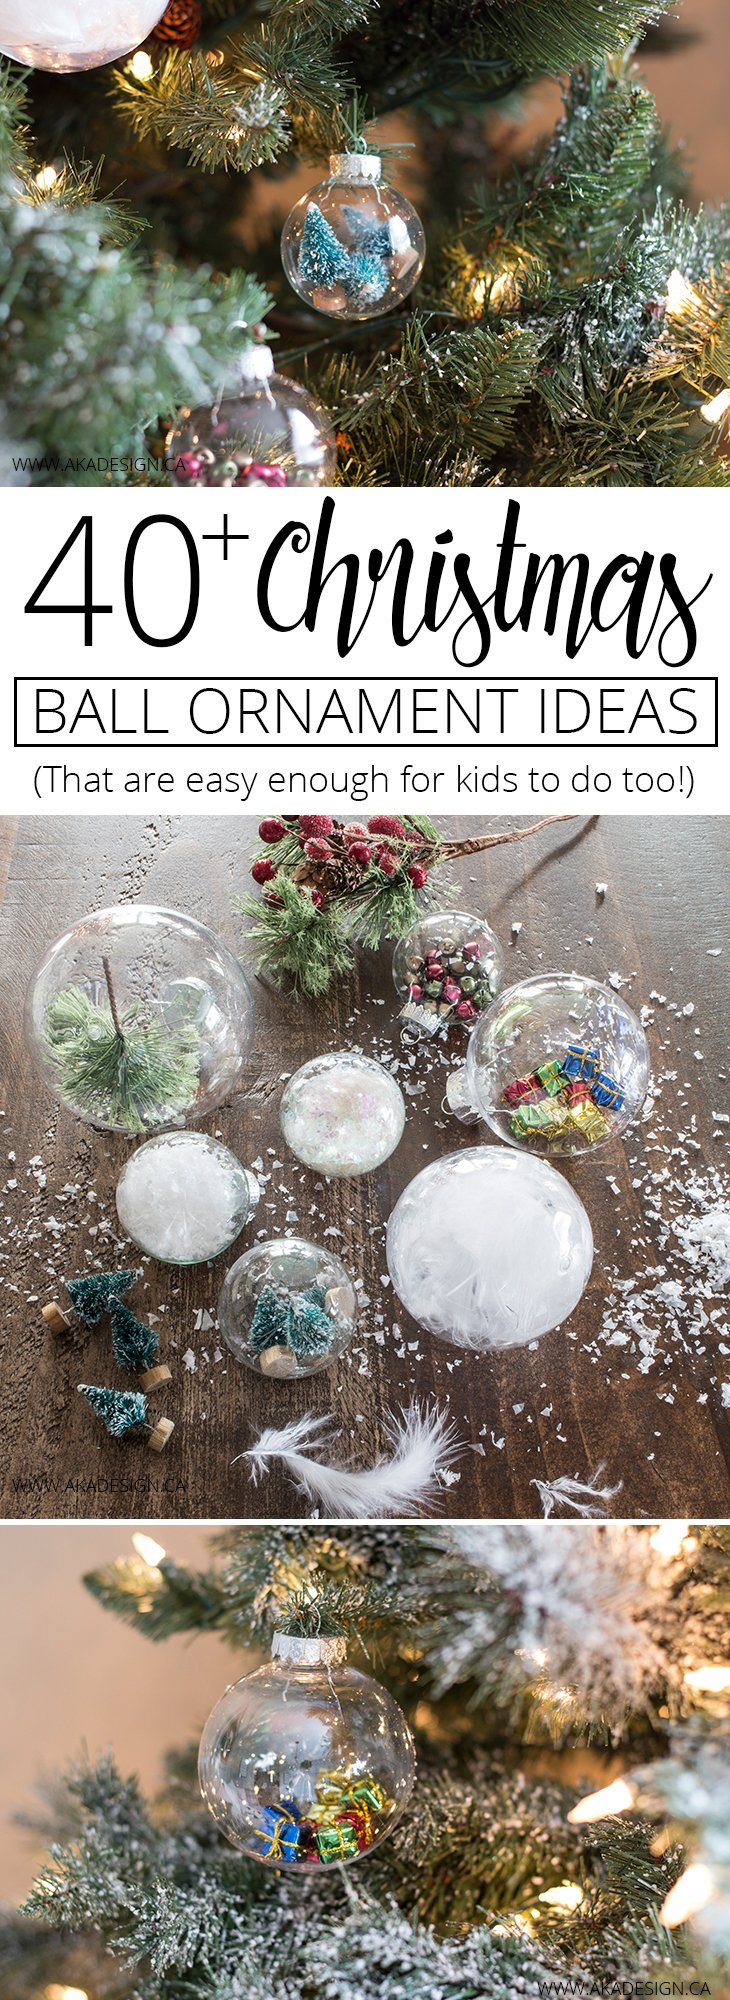 40 plus Christmas ball ornament ideas